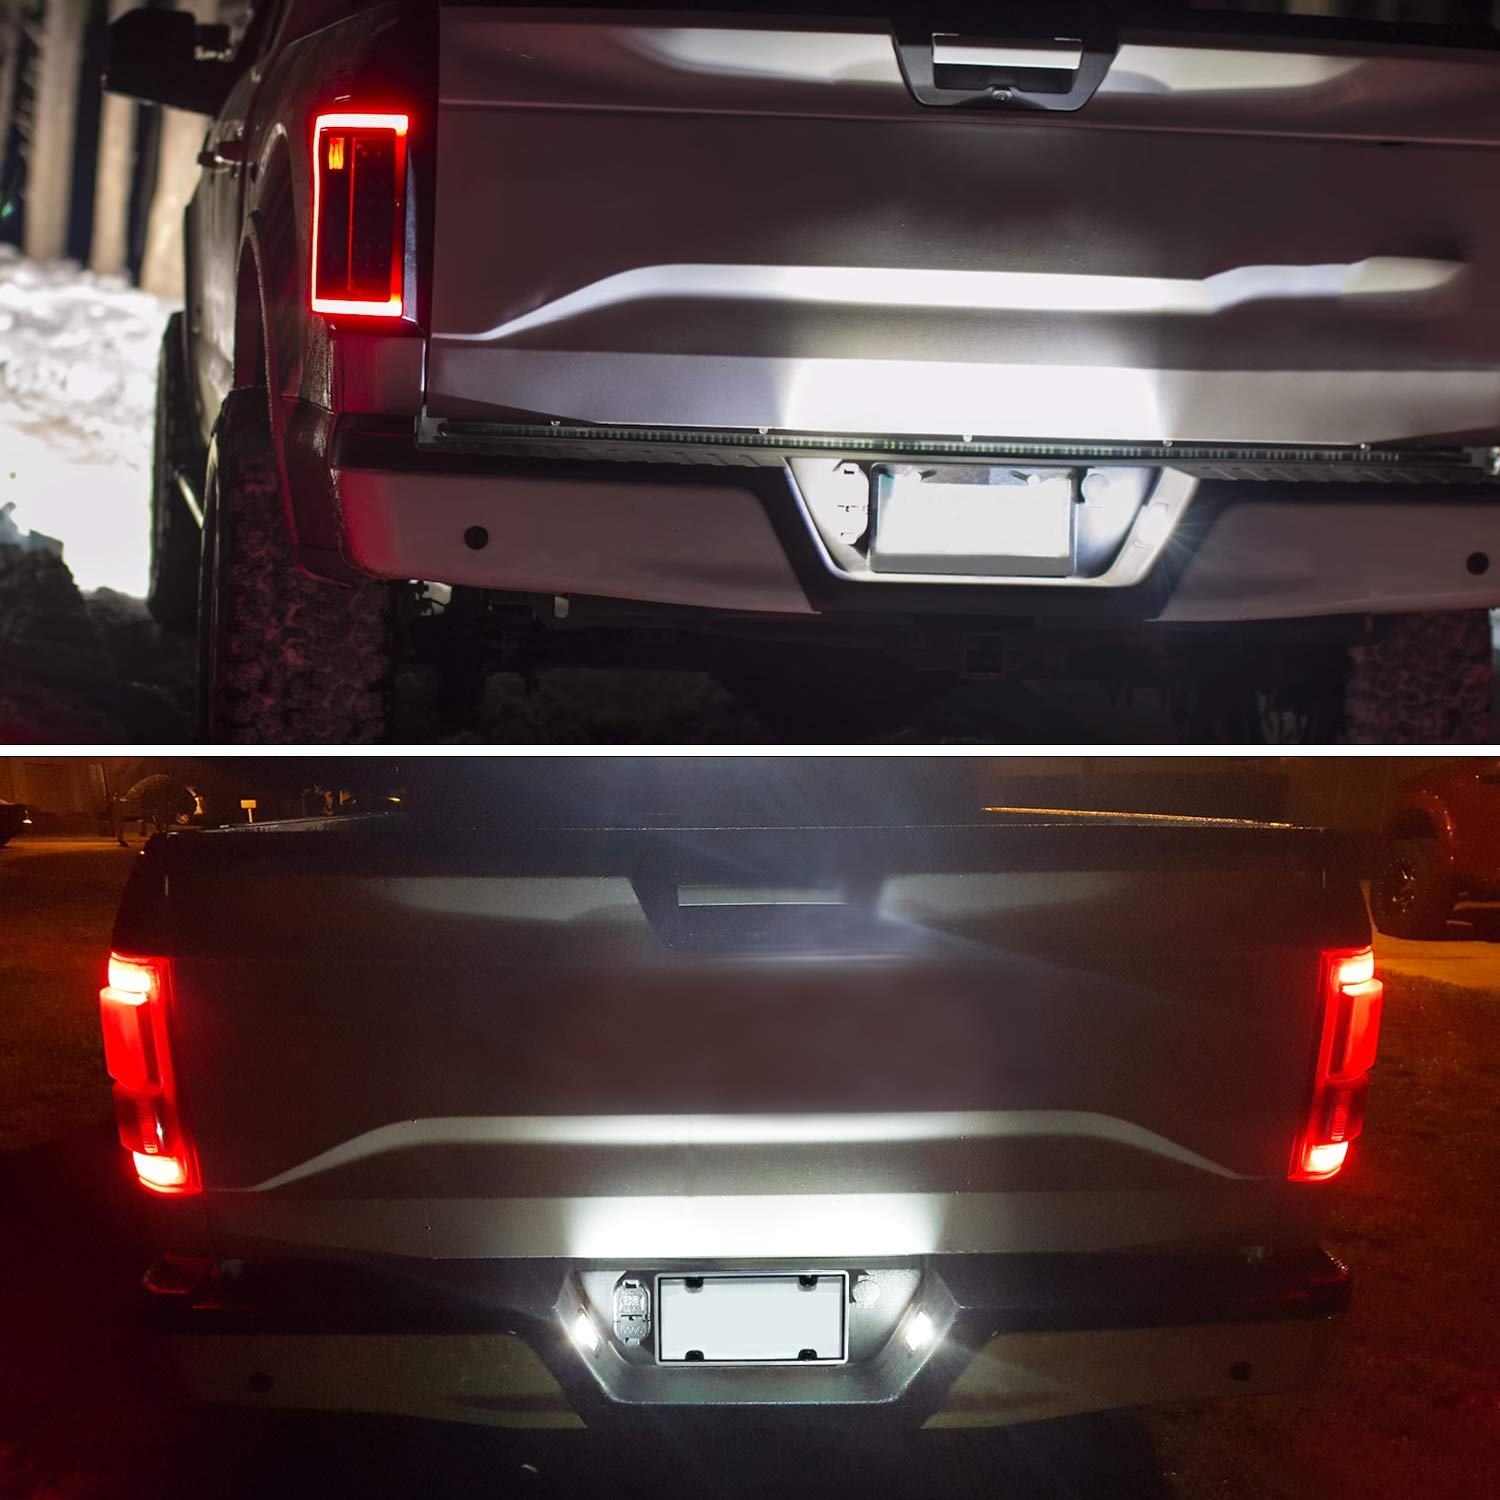 2017 2018 F150 Raptor 6000K White Pack of 2 RUXIFEY LED License Plate Light Lamp Compatible with 2015 to 2018 Ford F150